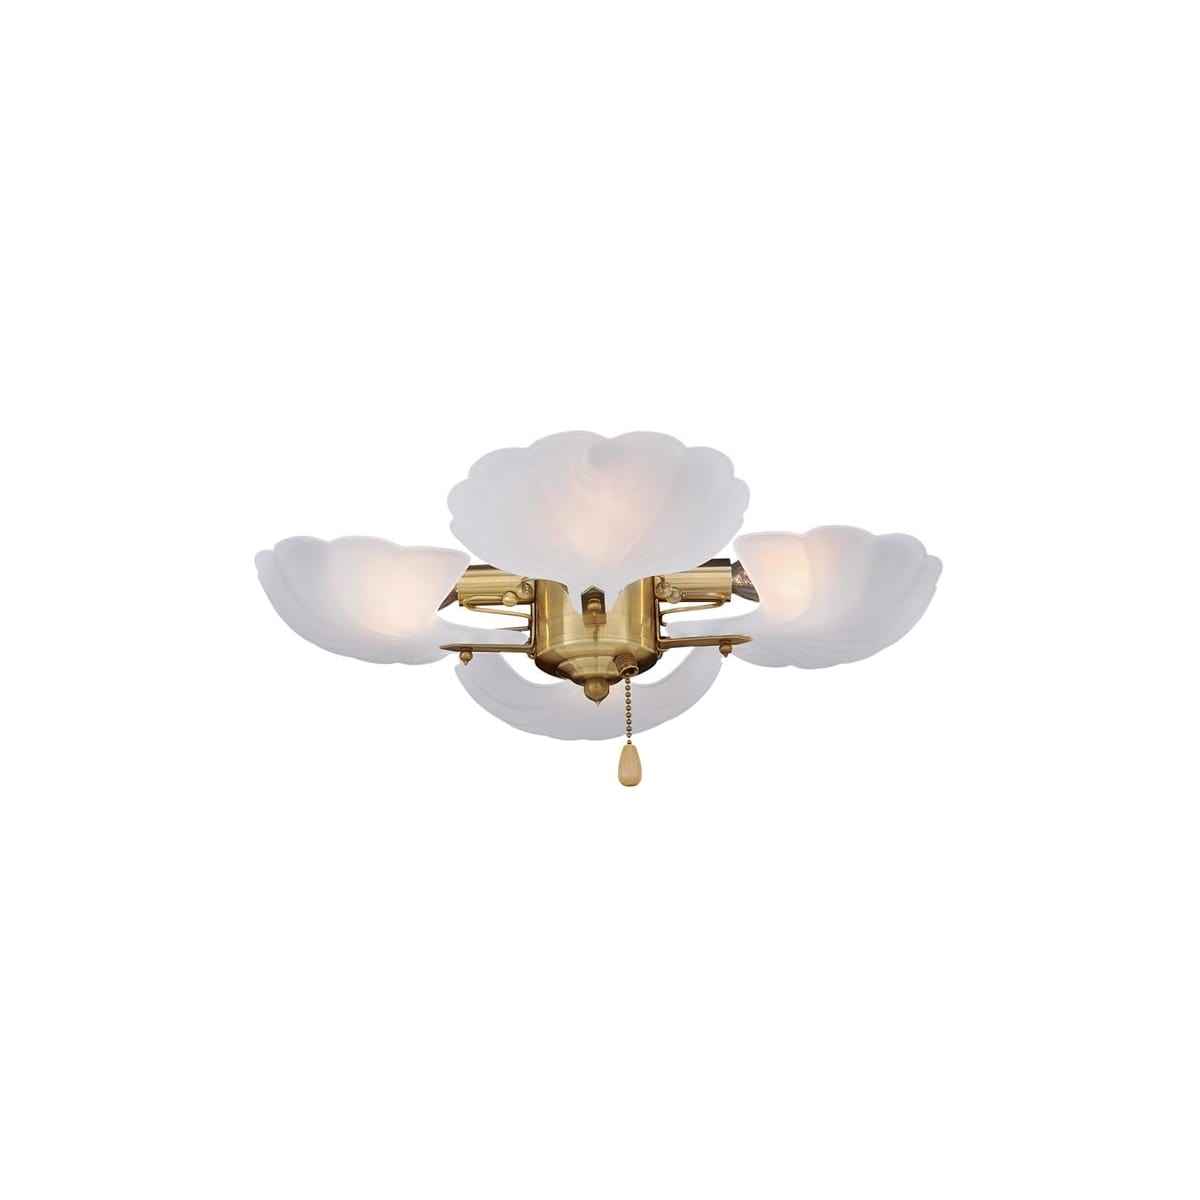 Emerson Cfshlkpb Polished Brass Functional Fan Light Kit 4 Light Shell Detail Lightingdirect Com